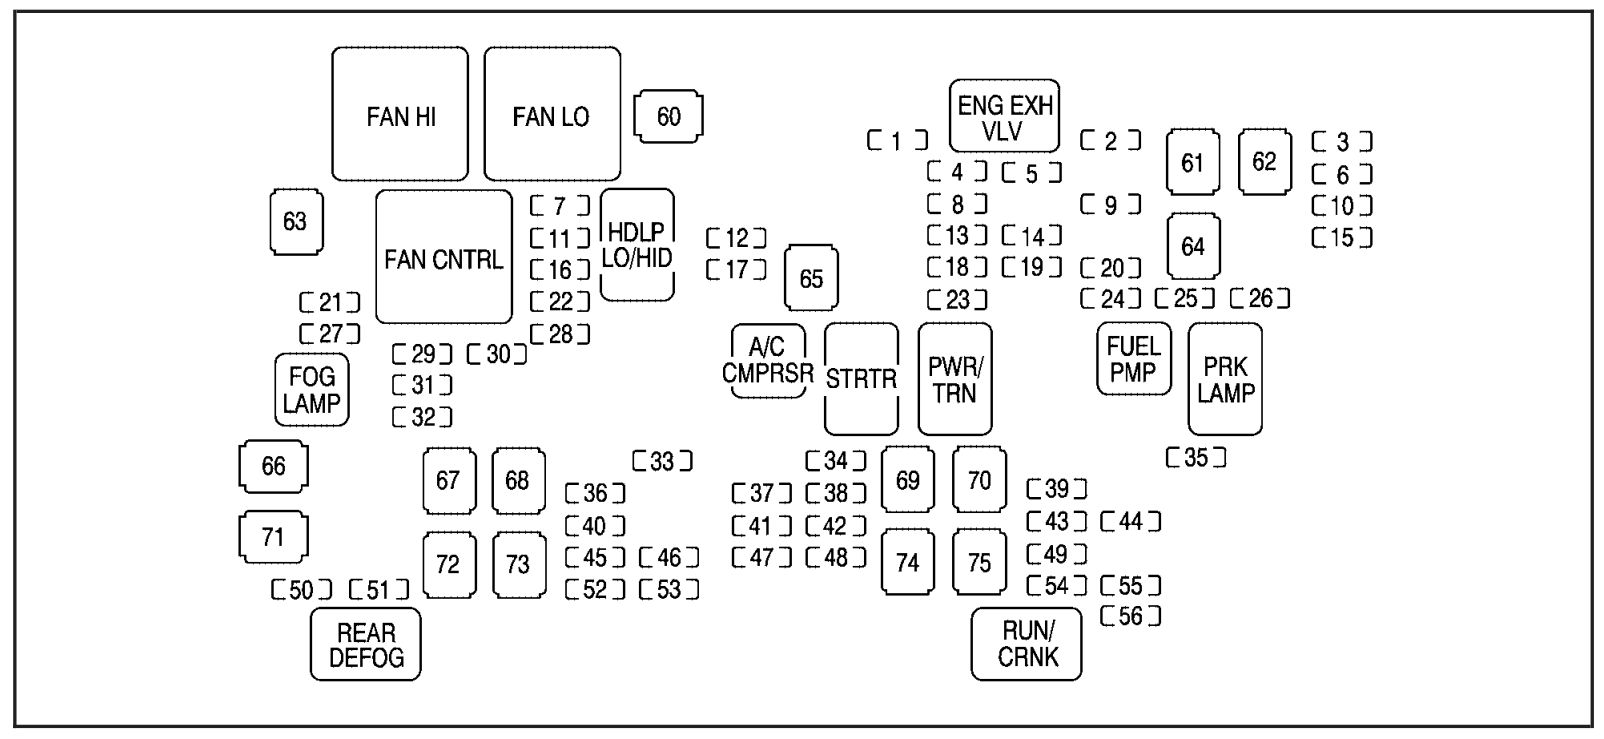 2007 chevrolet avalanche fuse panel diagram